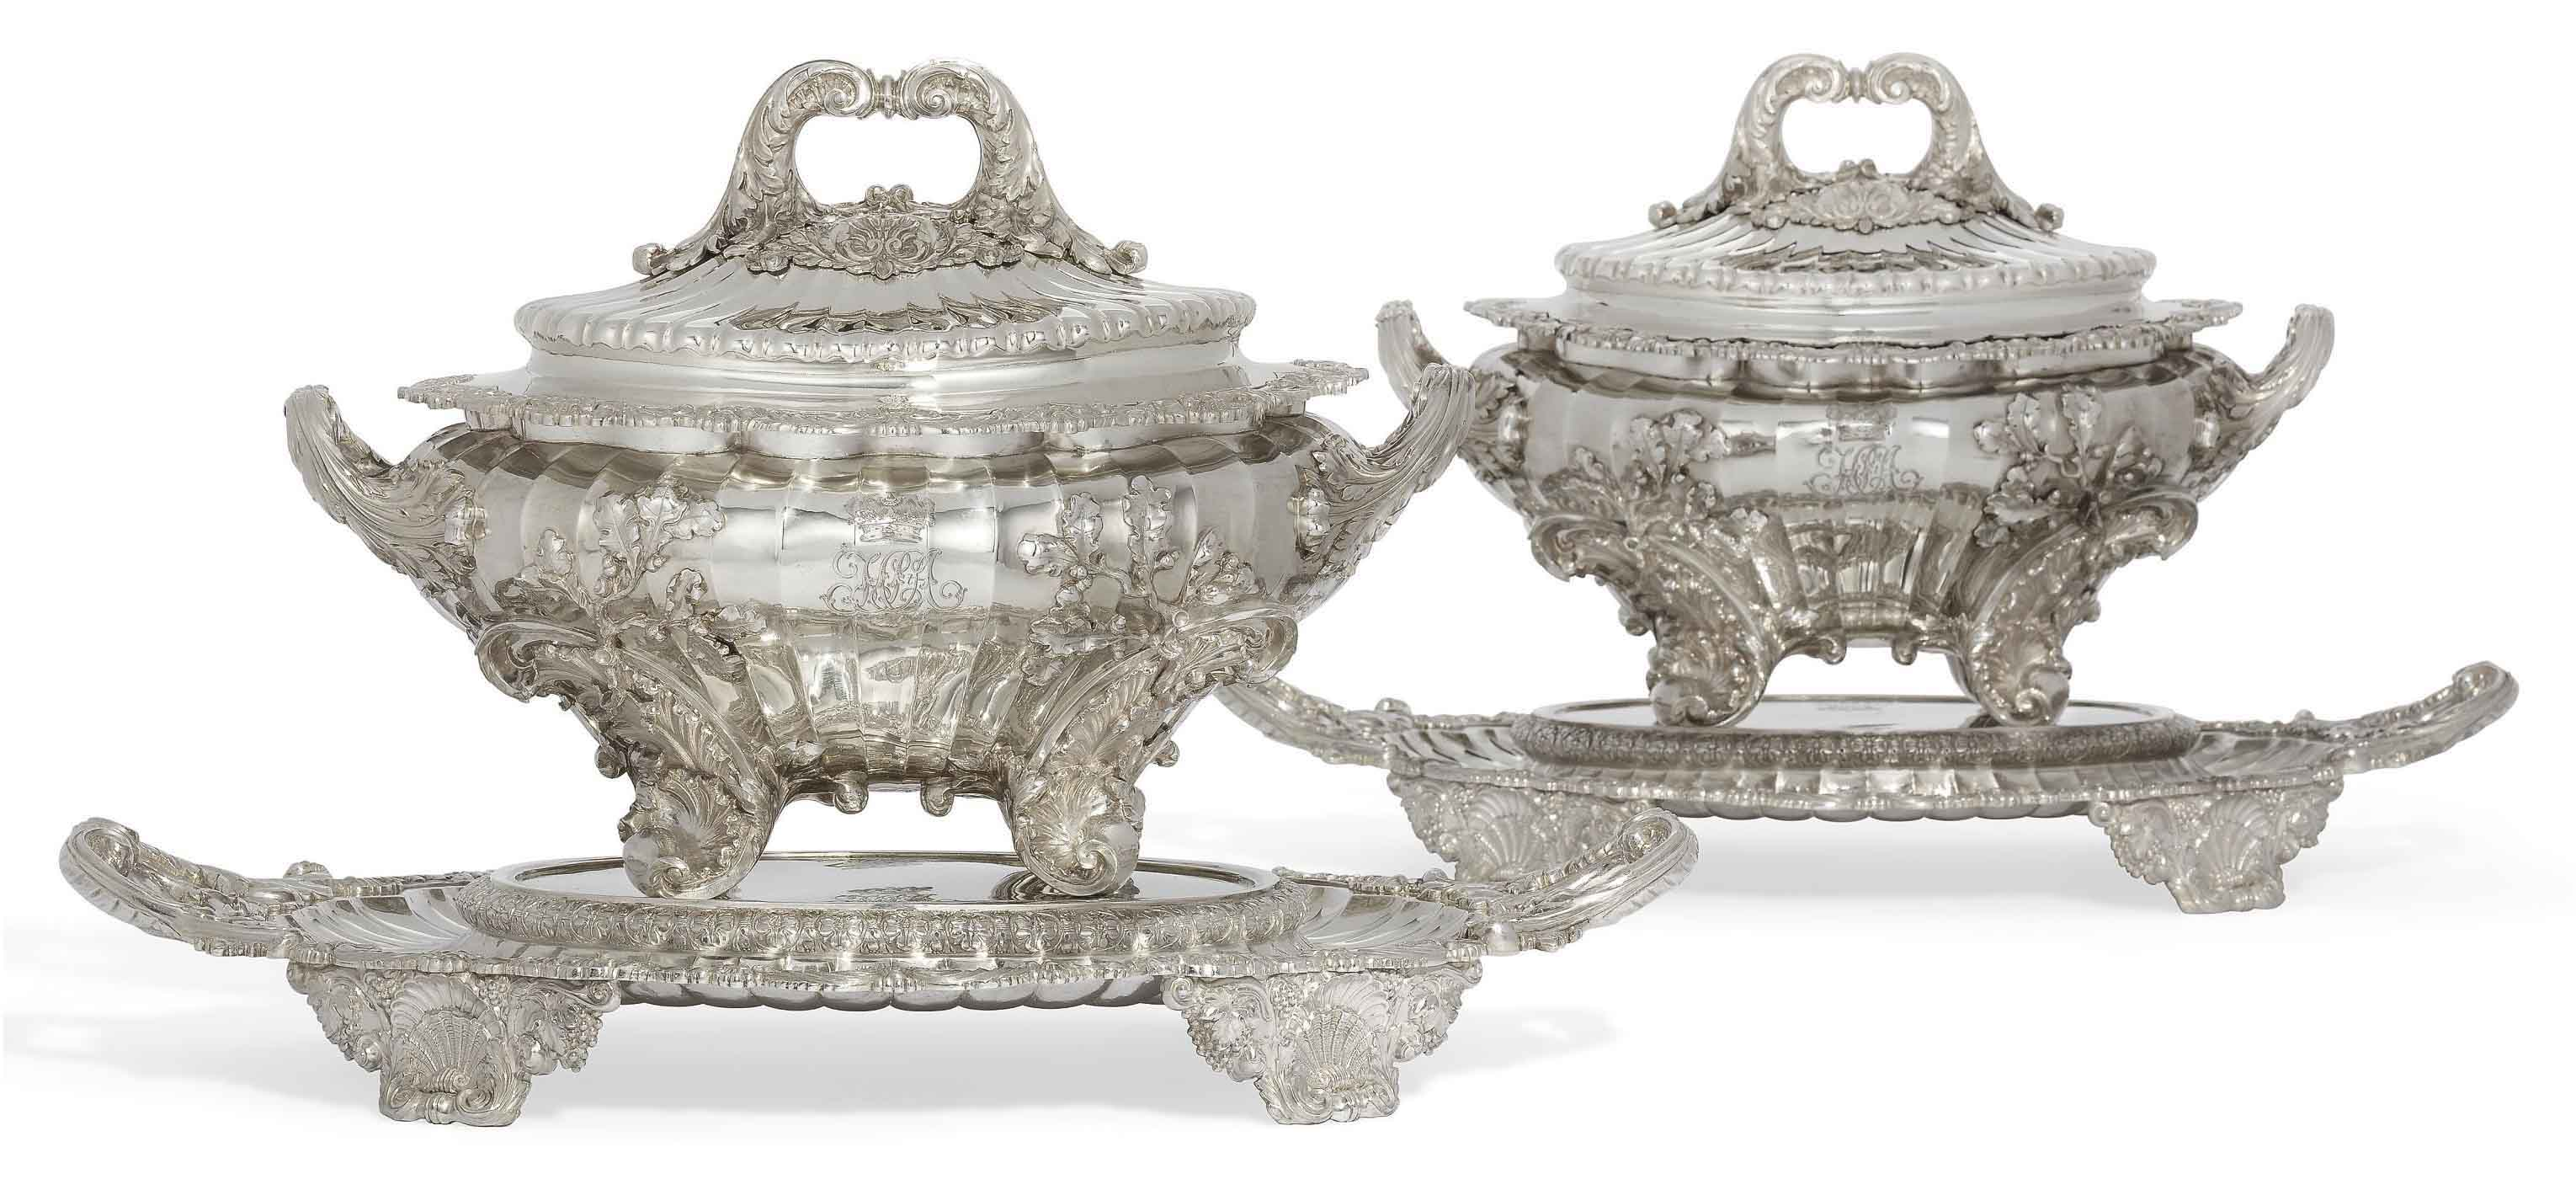 AN IMPORTANT PAIR OF GEORGE IV SILVER SOUP-TUREENS, COVERS AND STANDS FROM THE DUCHESS OF ST. ALBANS SERVICE